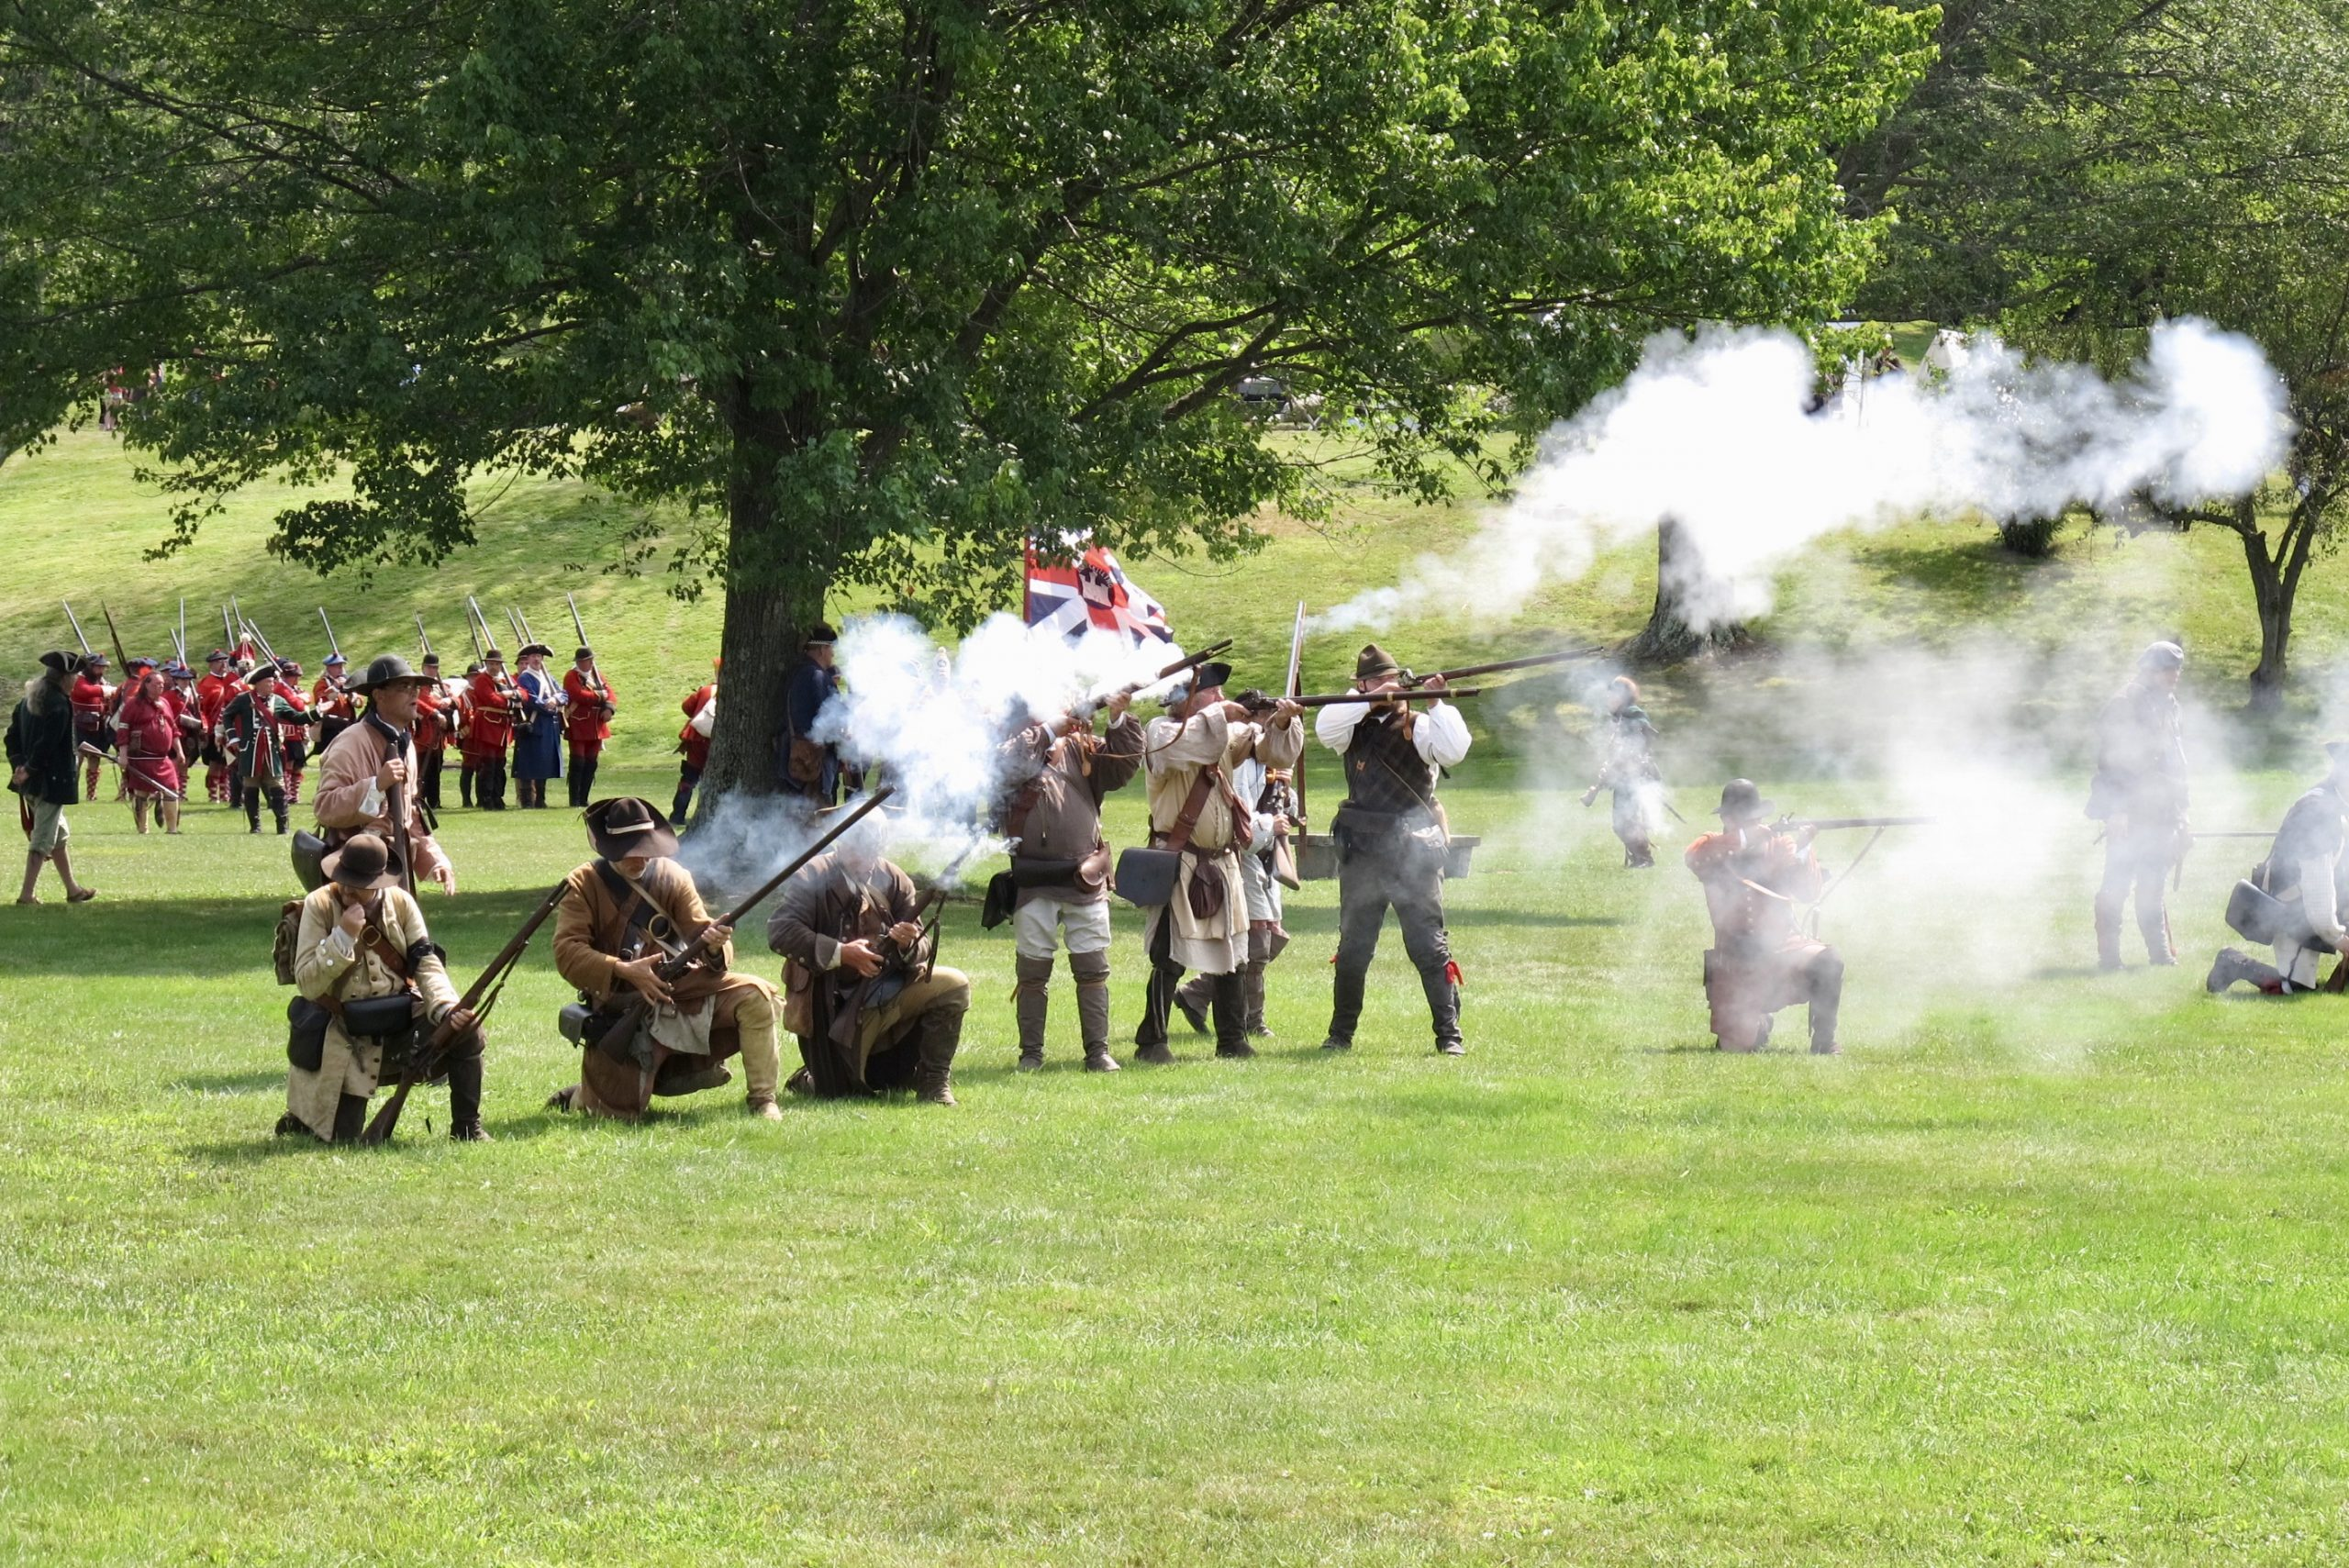 18th Century colonial soldier shoot muskets at reenactment